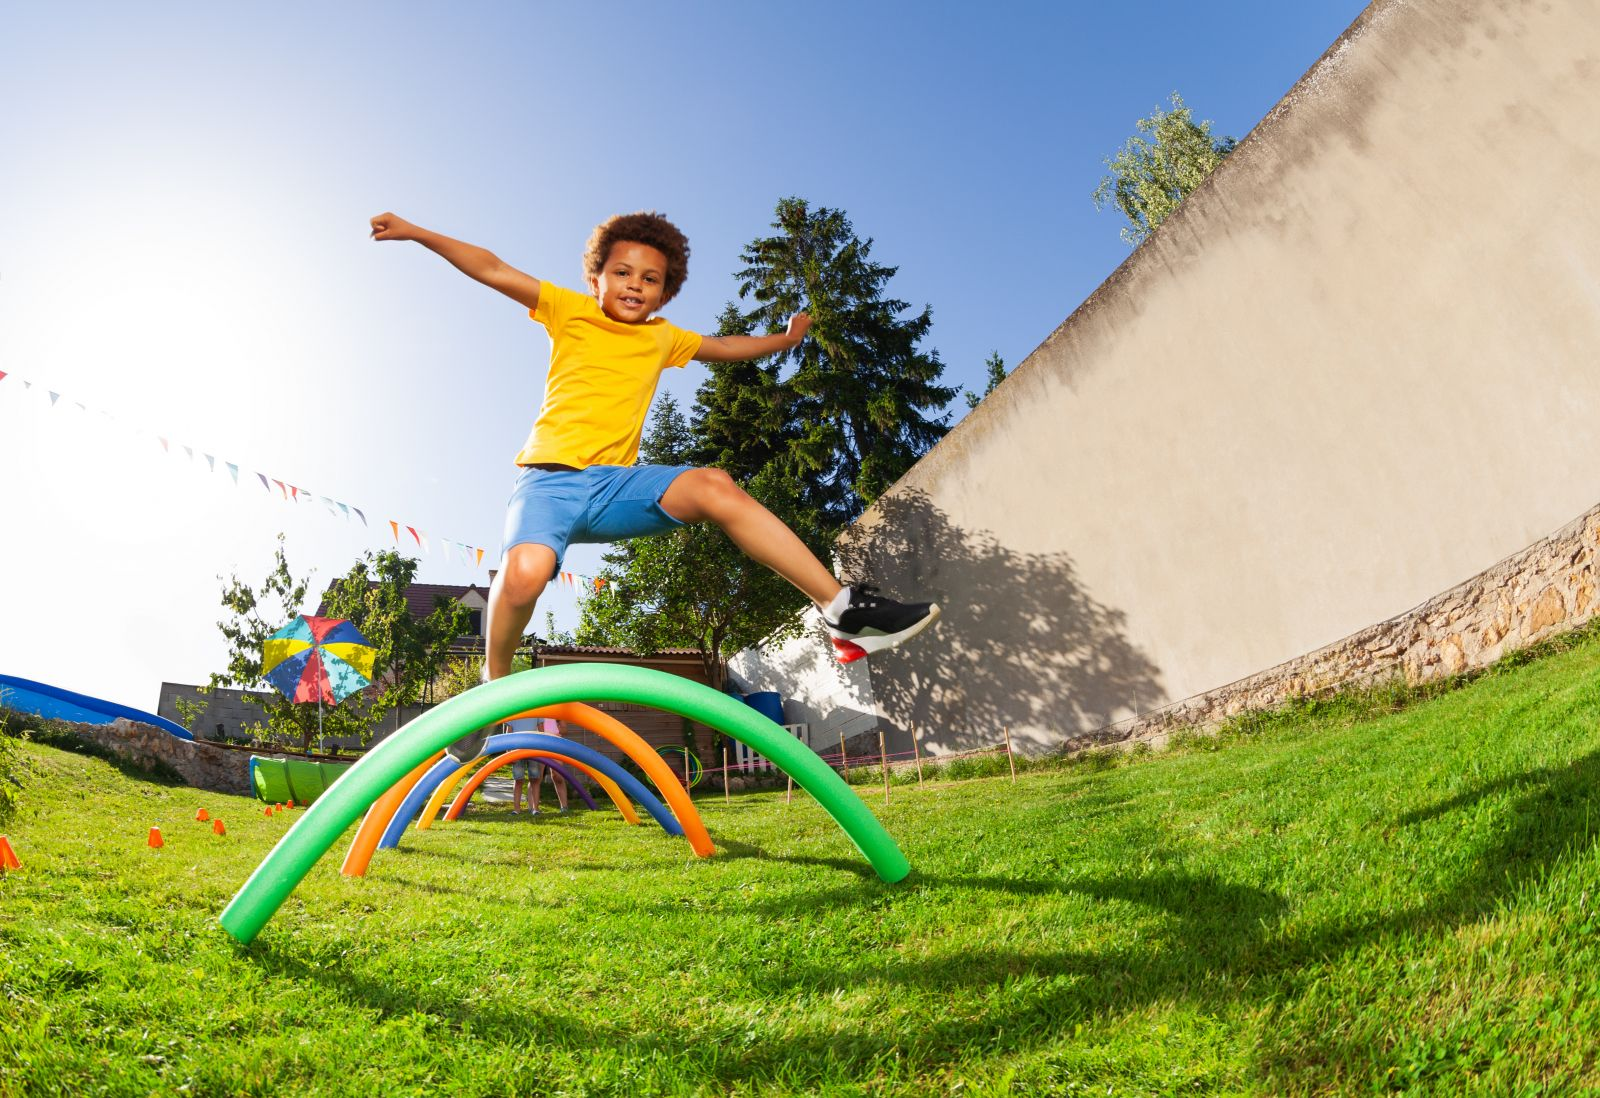 KOOSA Kids Relay Rallies Obstacle Challenge. Build your own obstacle course at home!